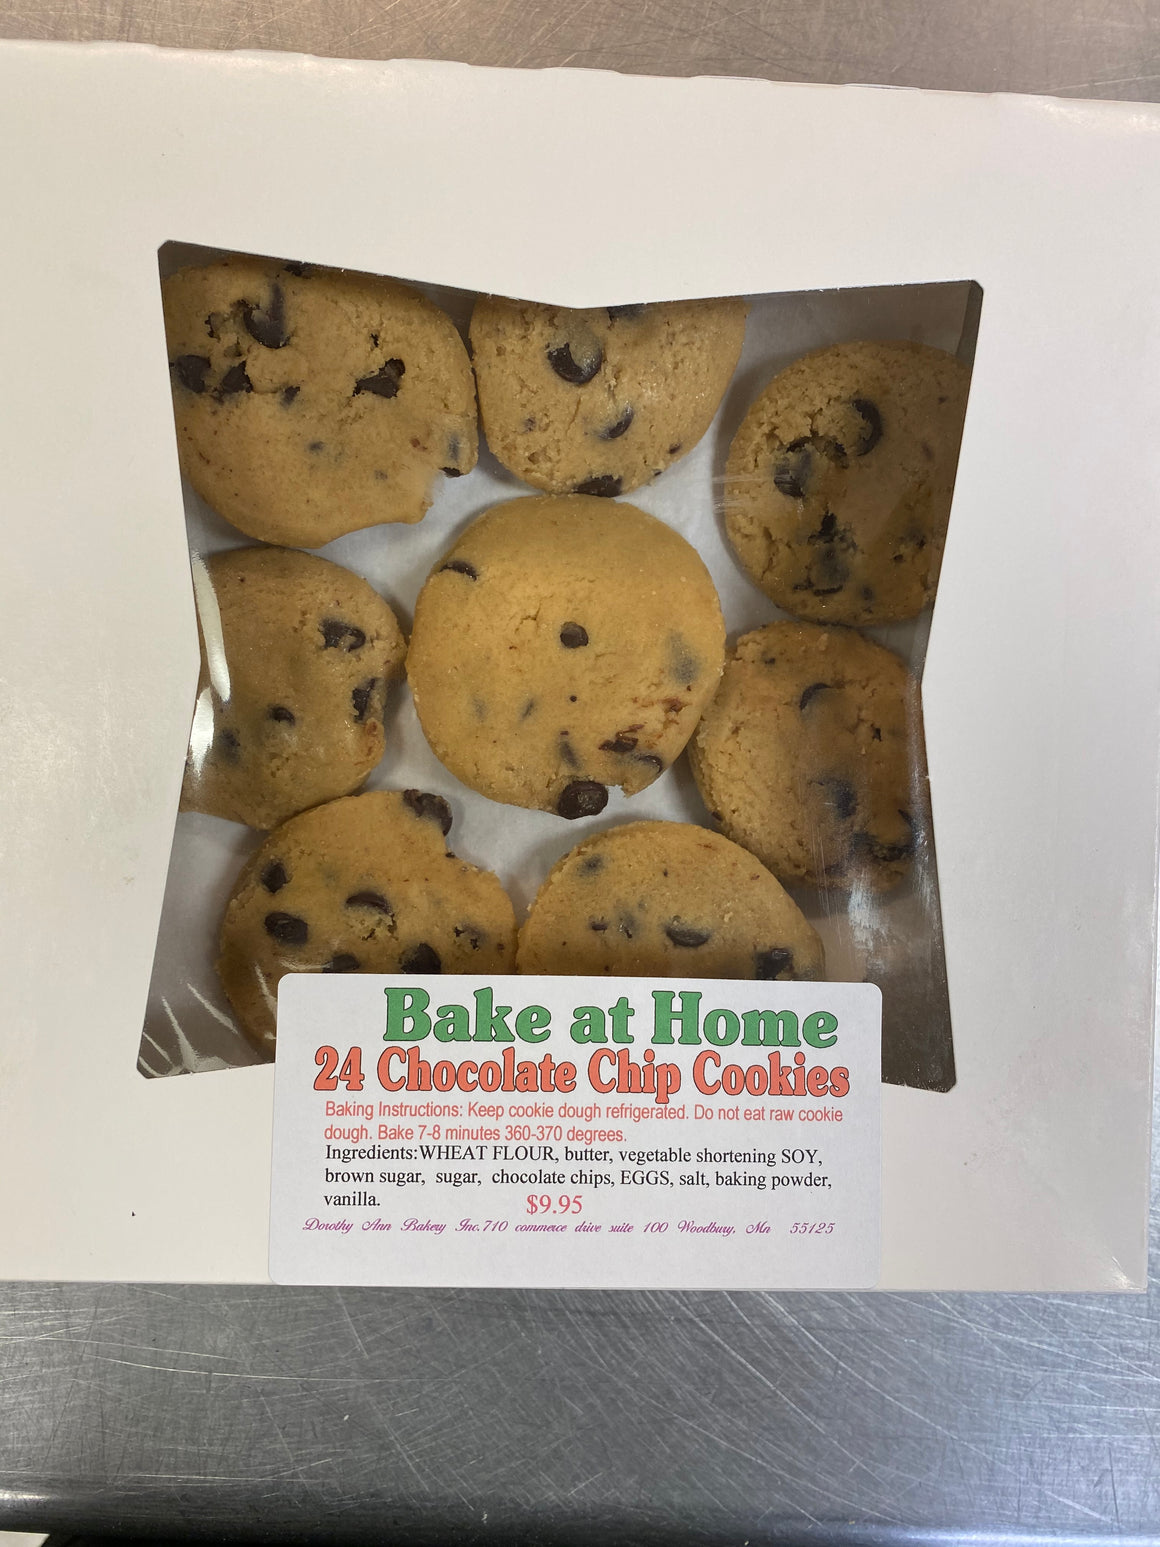 Bake at Home Chocolate Chip Cookies